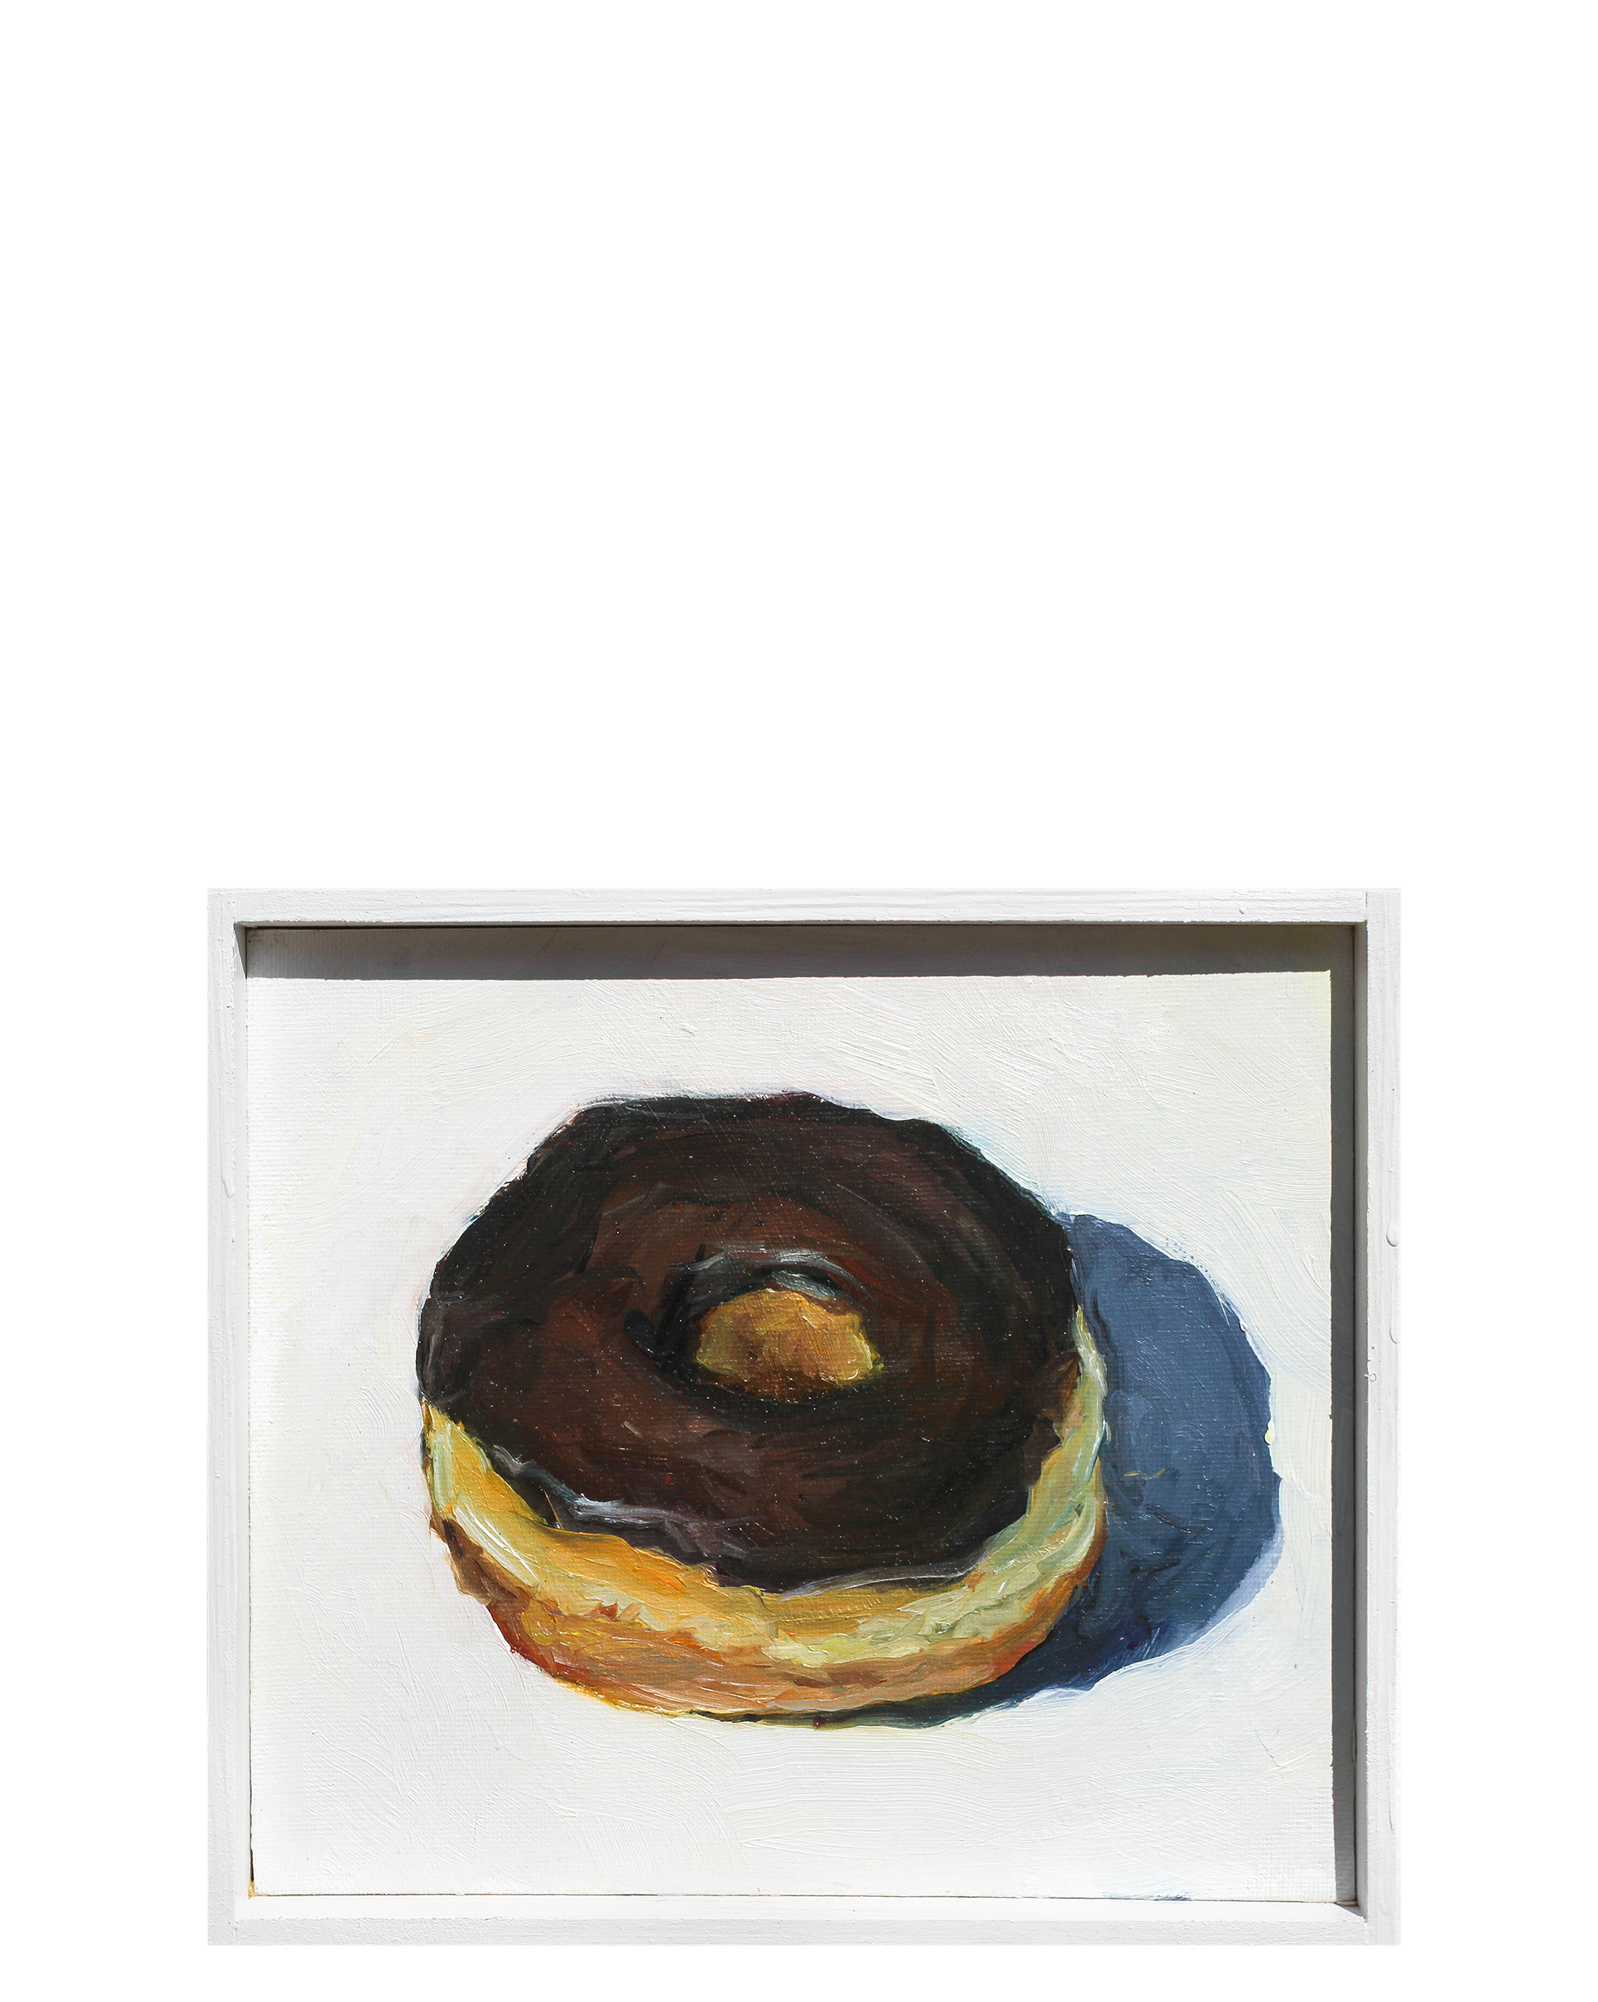 """Chocolate Doughnut"" by John Bucklin,"